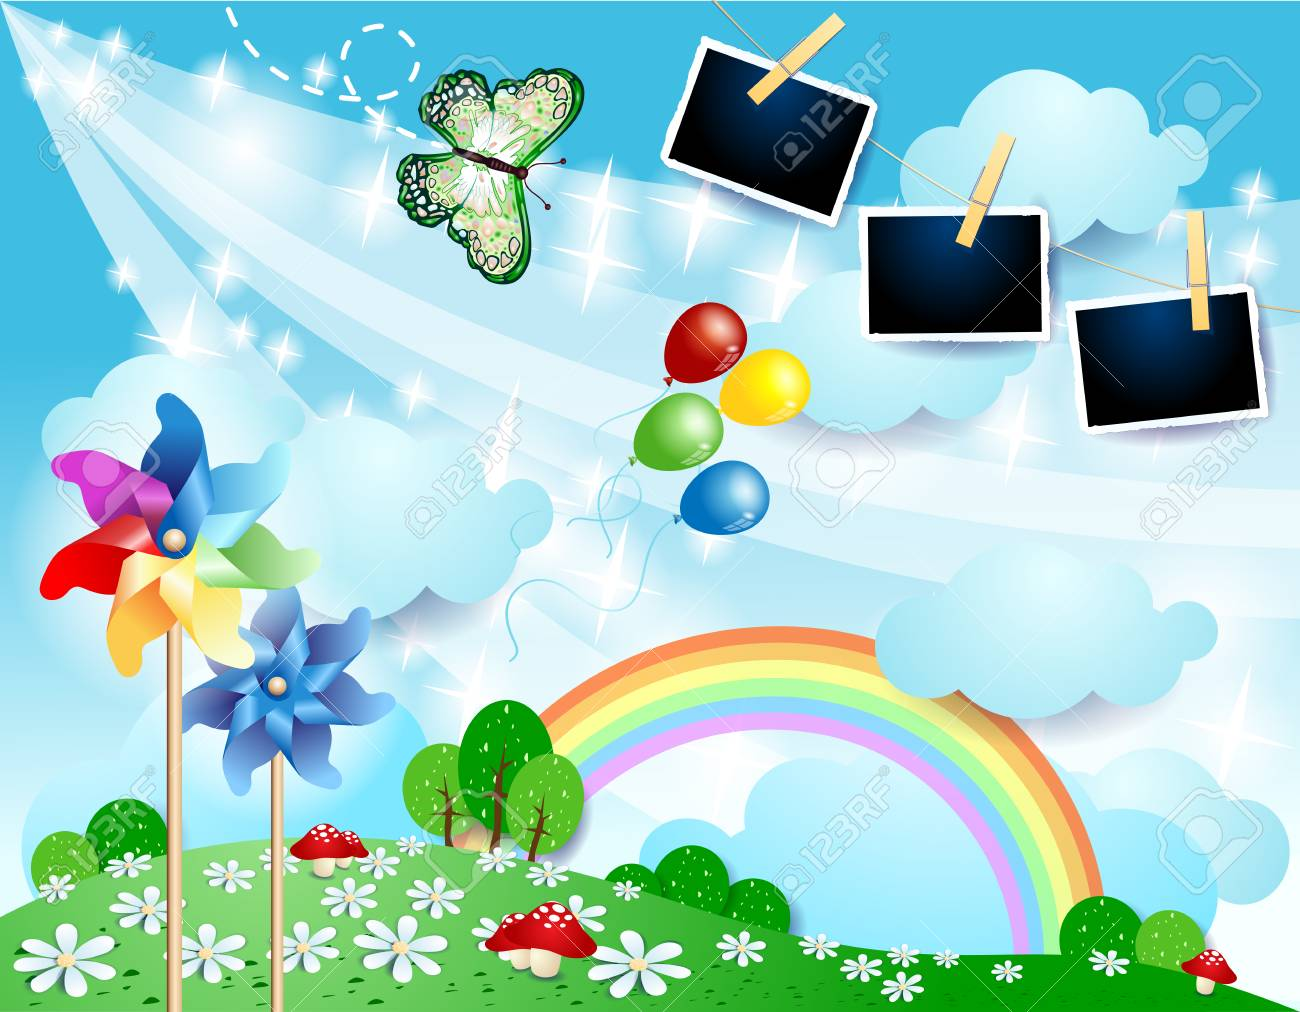 Spring landscape with butterfly, pinwheels and photo frames. Vector illustration eps10 - 125125938